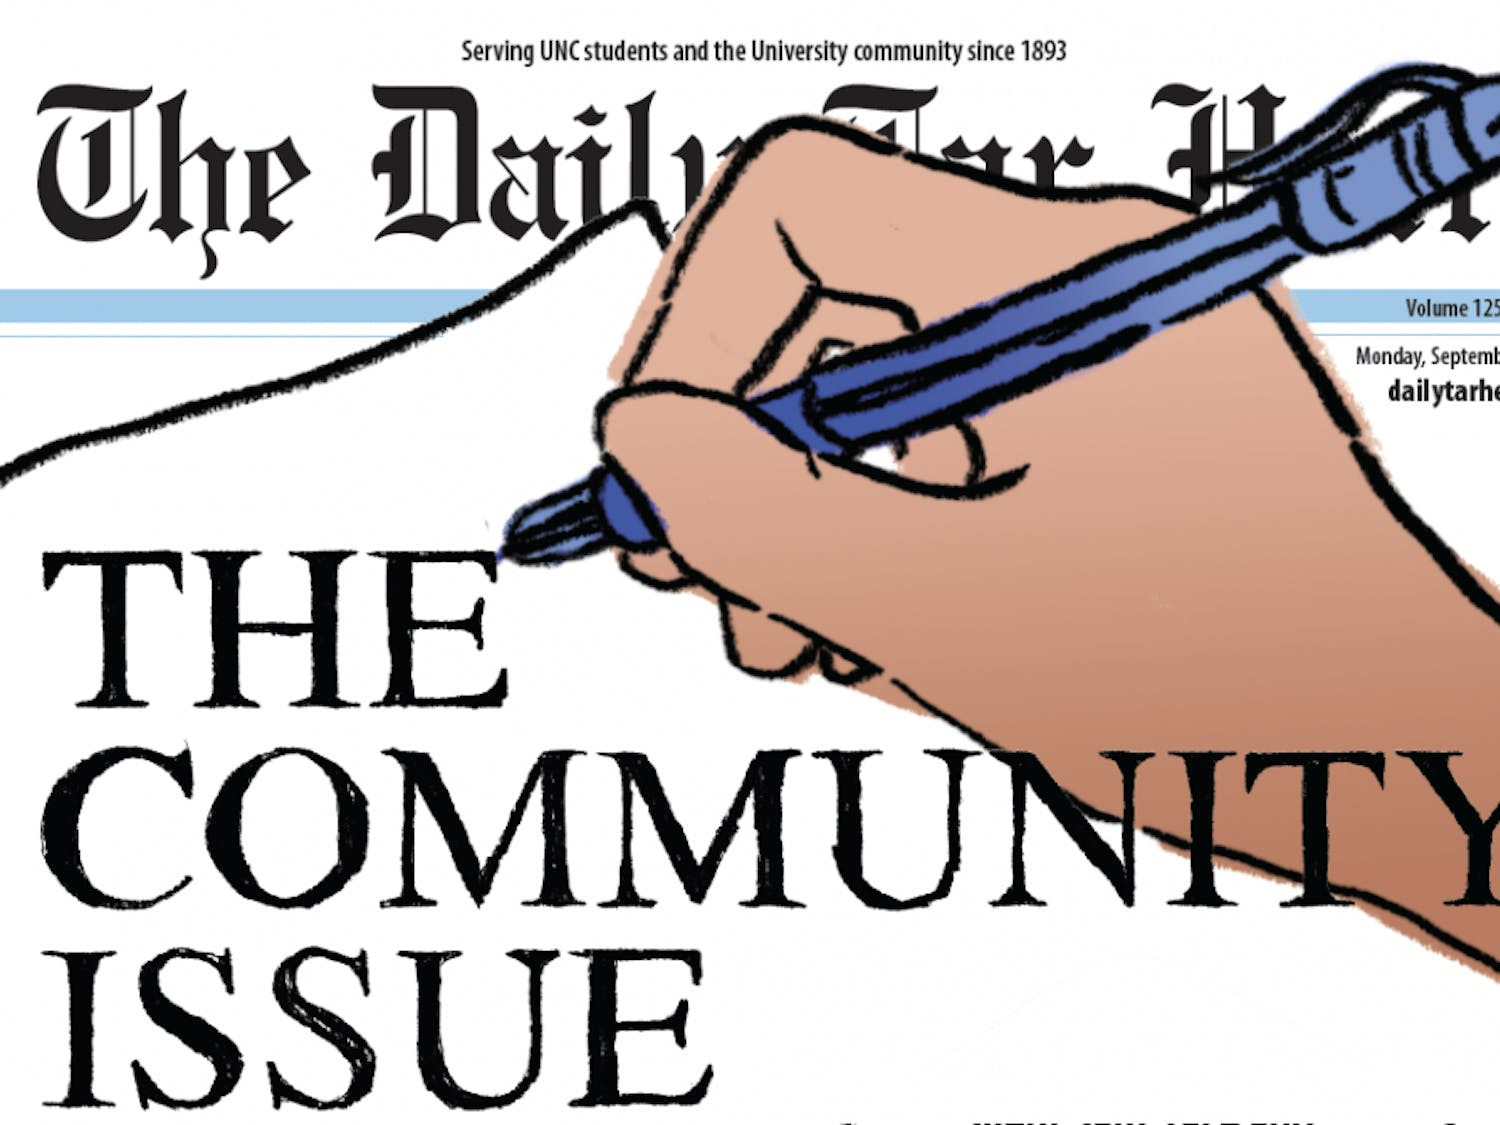 Our front page of the Sept. 4 print edition of The Daily Tar Heel, in which we published all of the letters we received regarding Silent Sam.